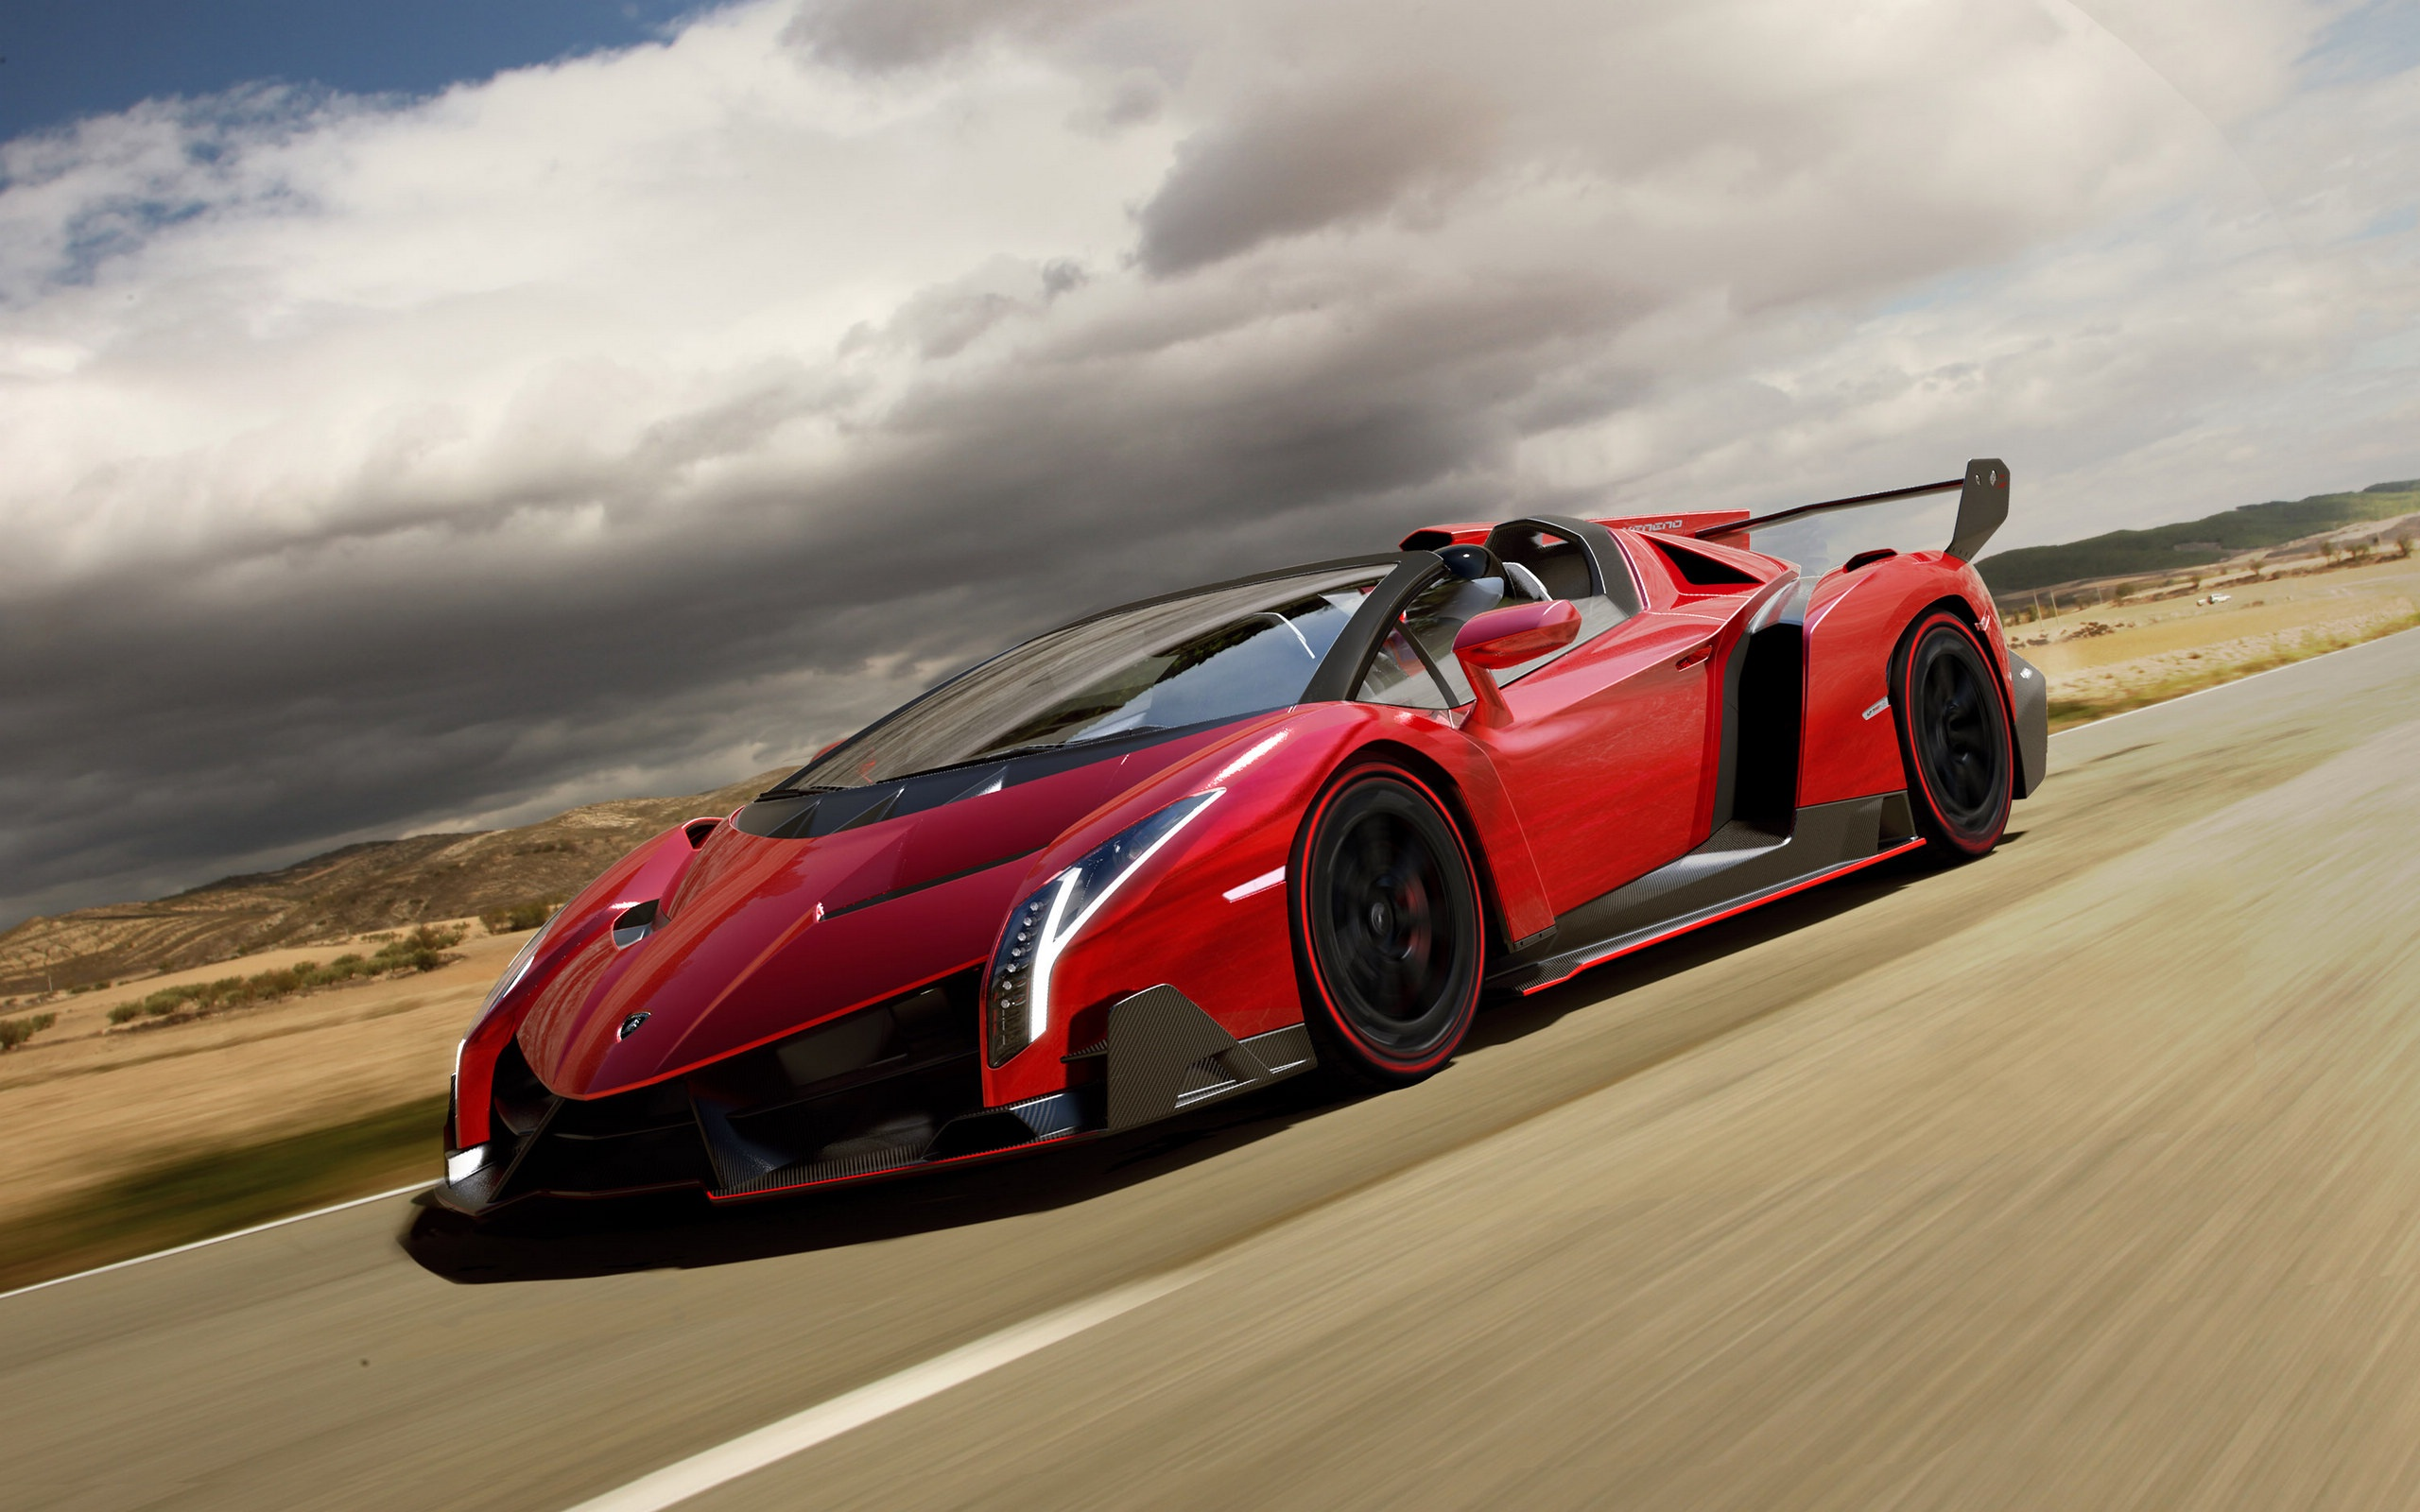 Wallpaper Red Lamborghini Veneno Roadster supercar in road